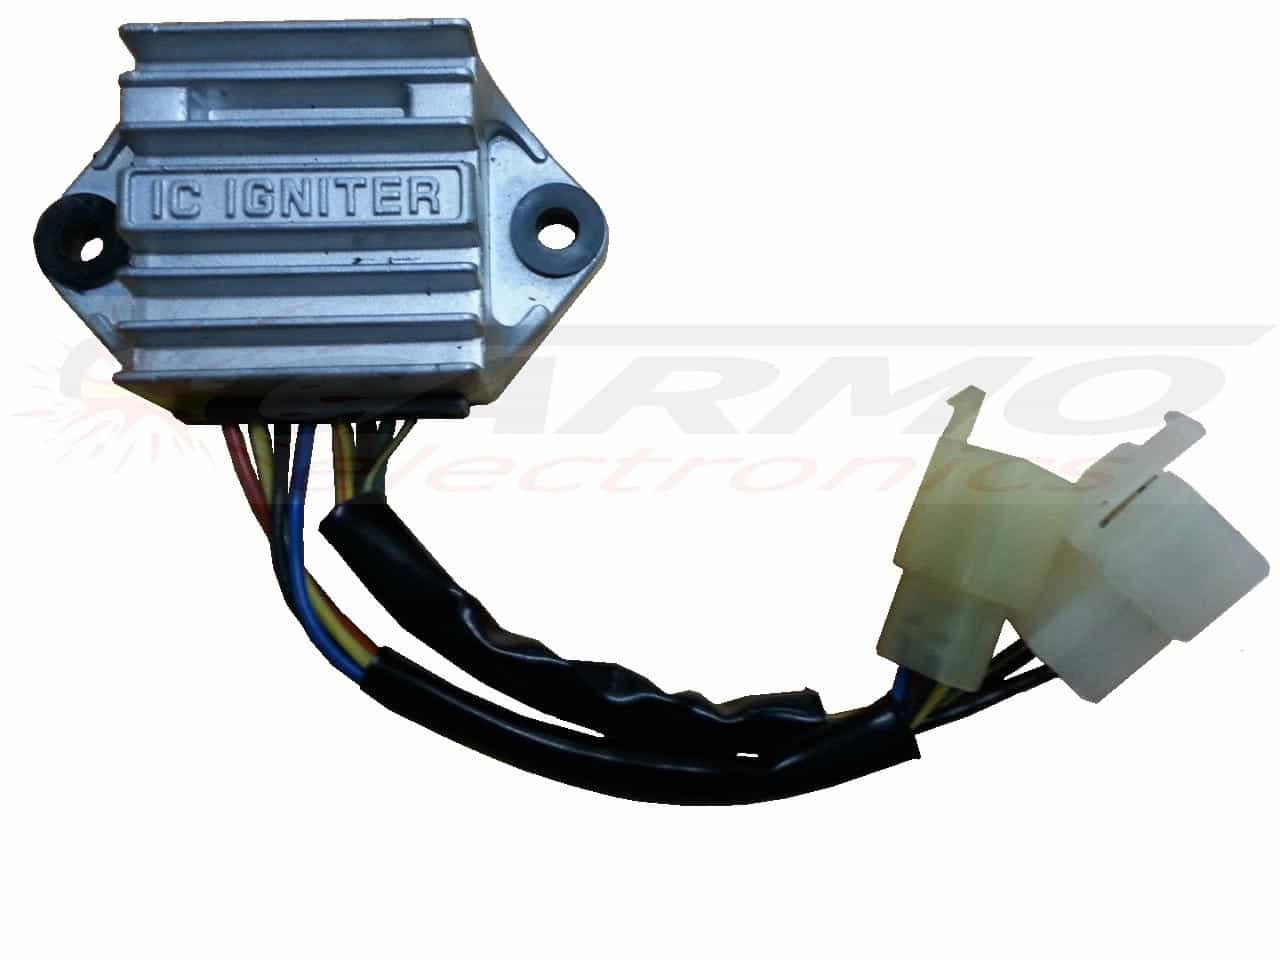 Kawasaki Carmo Electronics The Place For Parts Or Mv Agusta Brutale Wiring Diagram Z400 21119 1020 Cdi